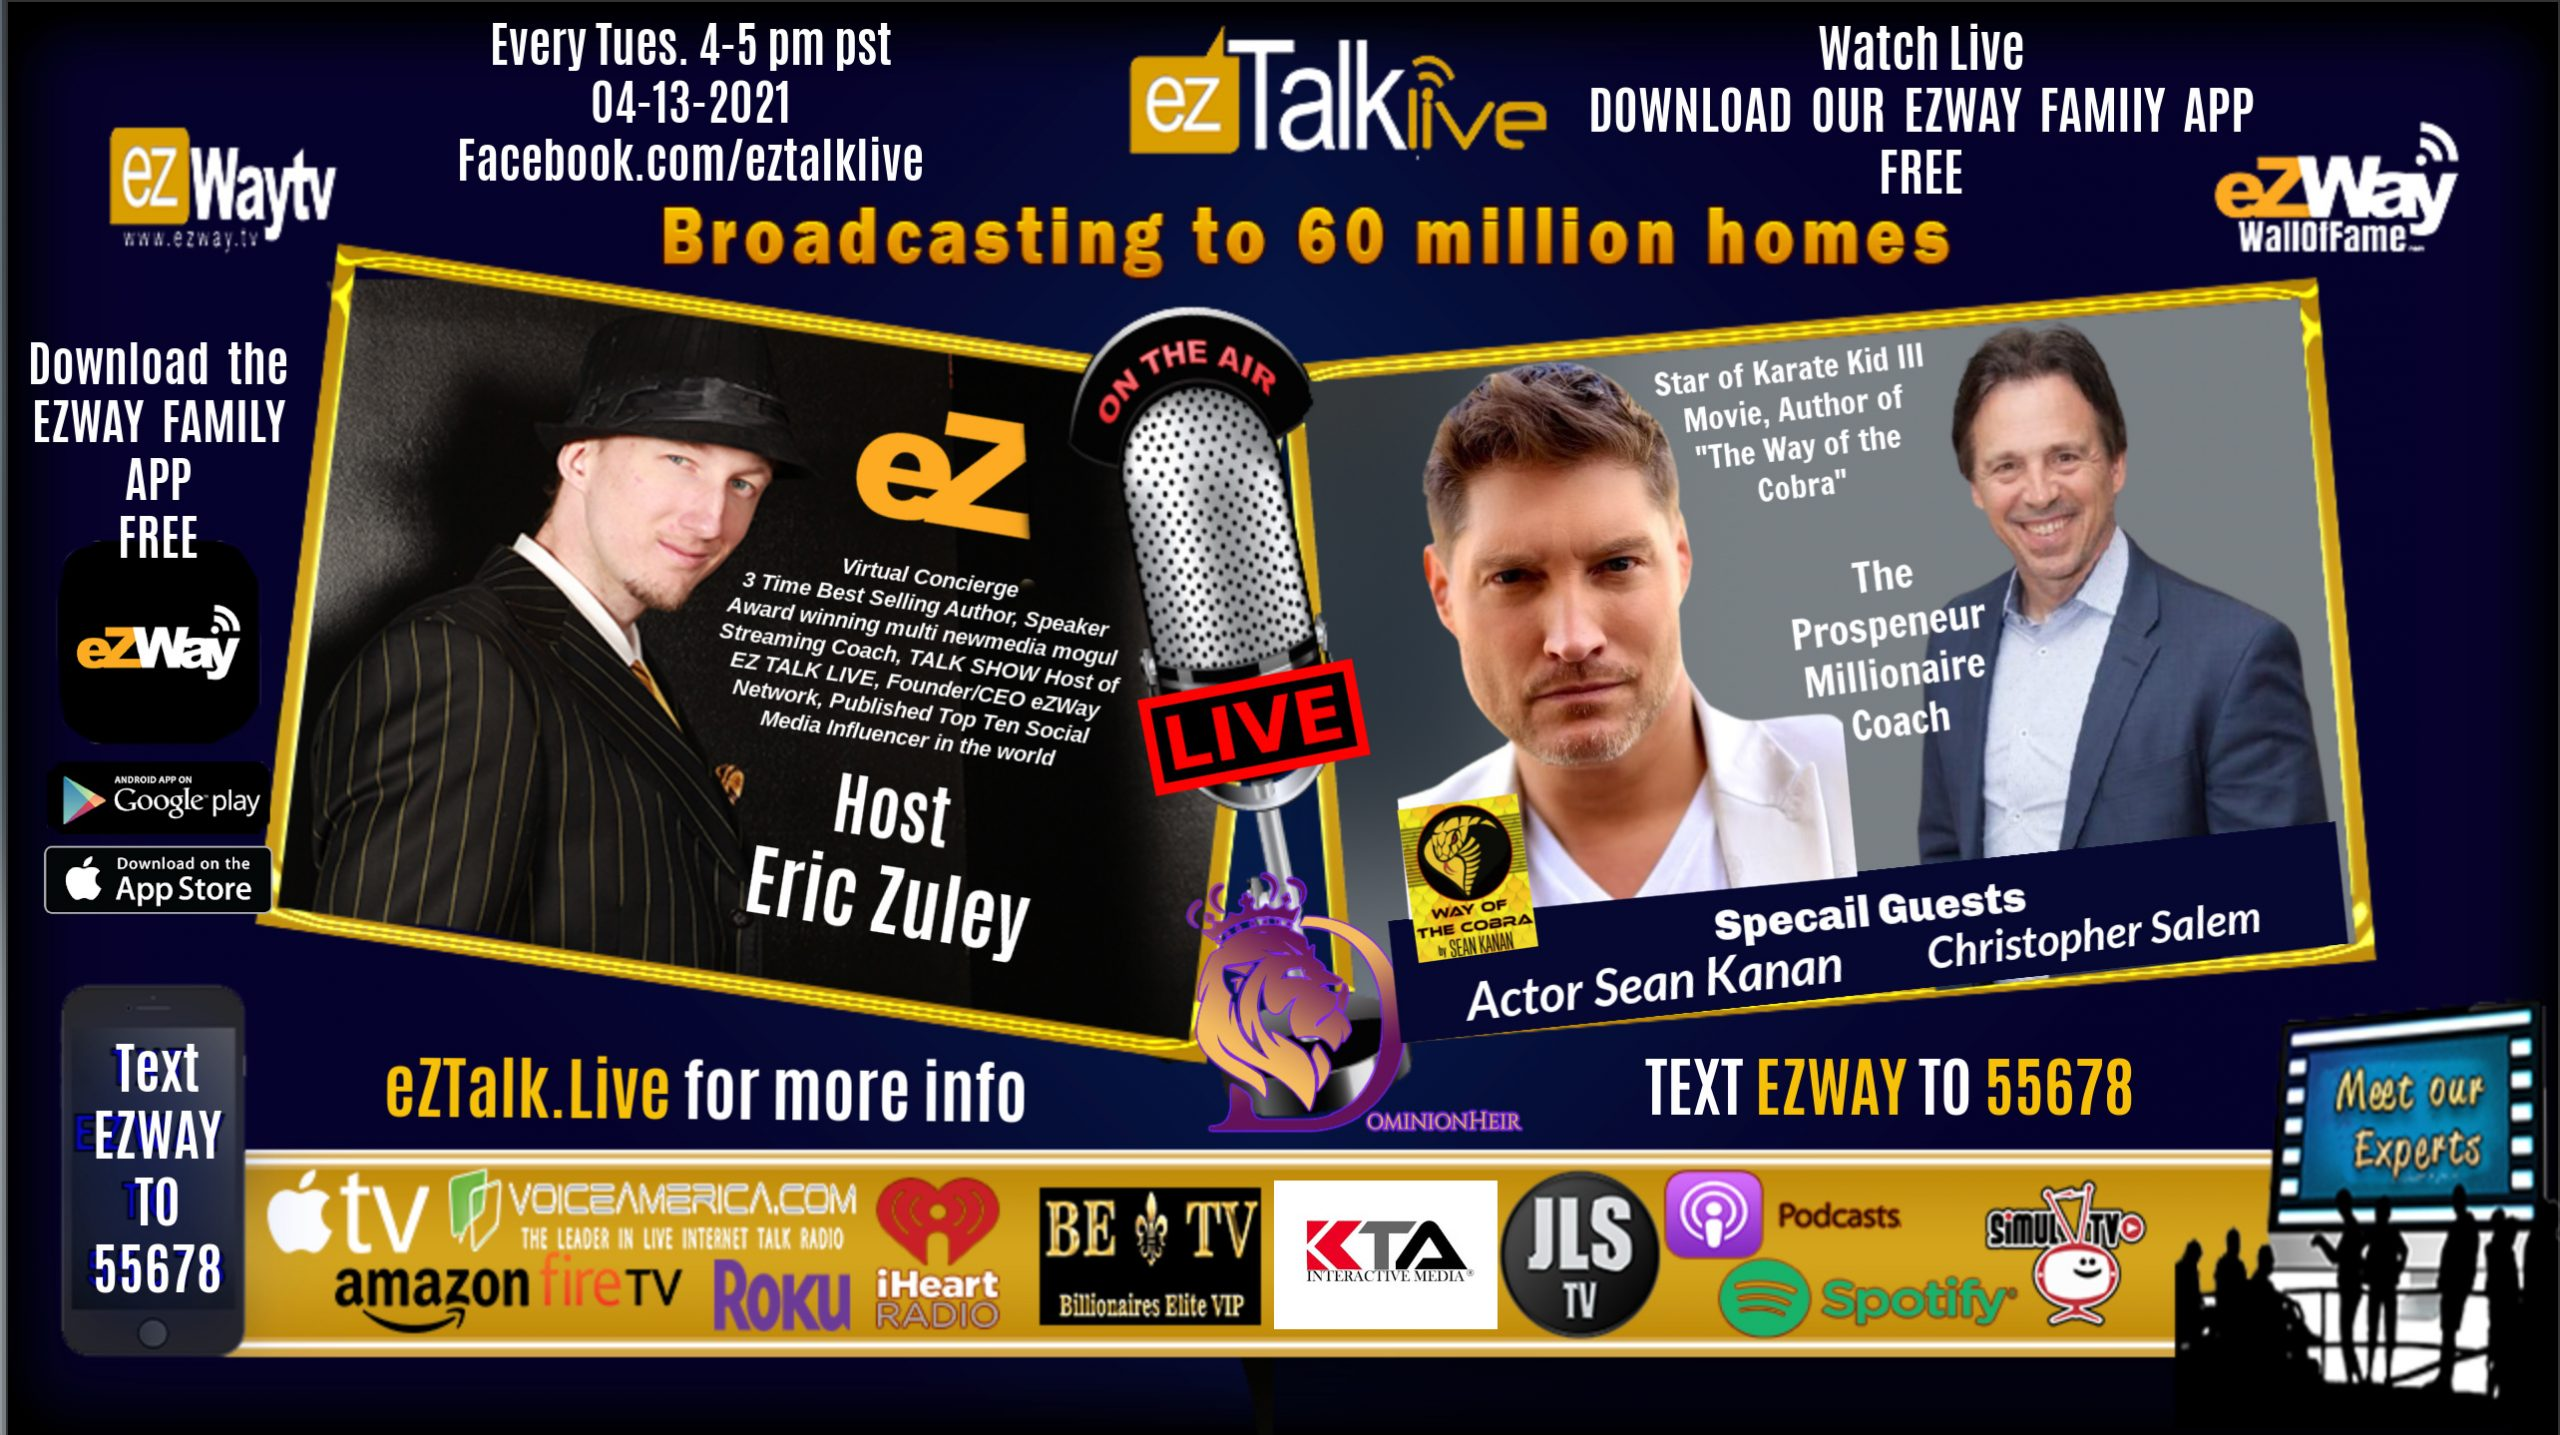 EZ TALK LIVE with Eric Zuley Feat. Sean Kanan and Christopher Salem